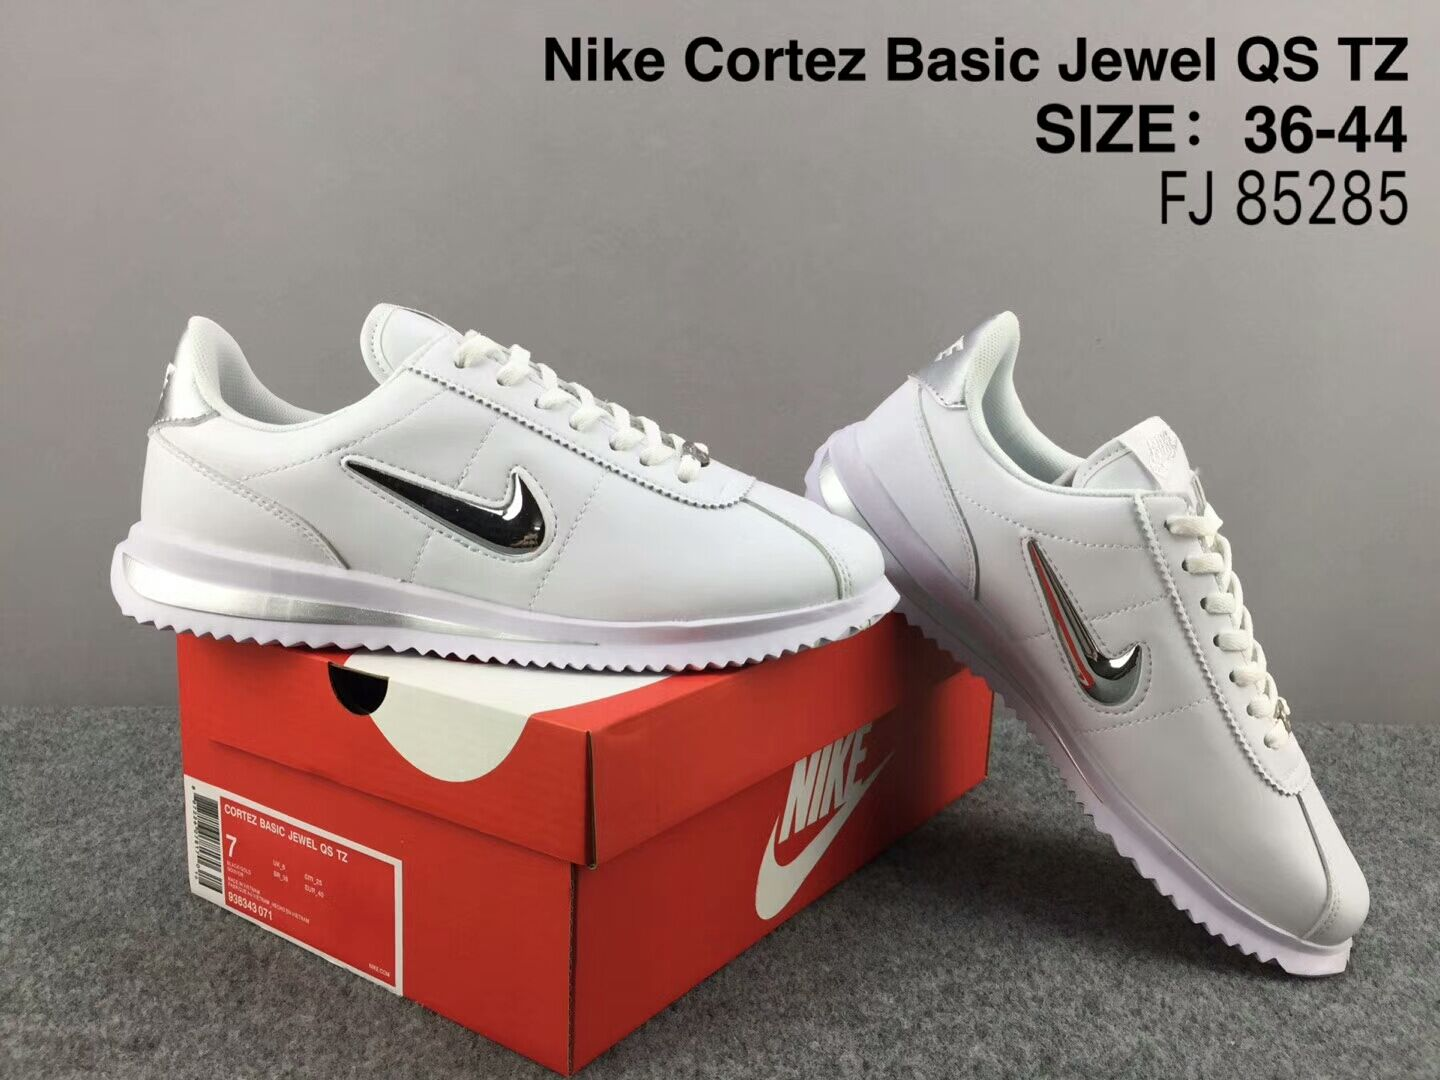 NiKe Cortez Basic Jewel QS TZ White Gold Shoes